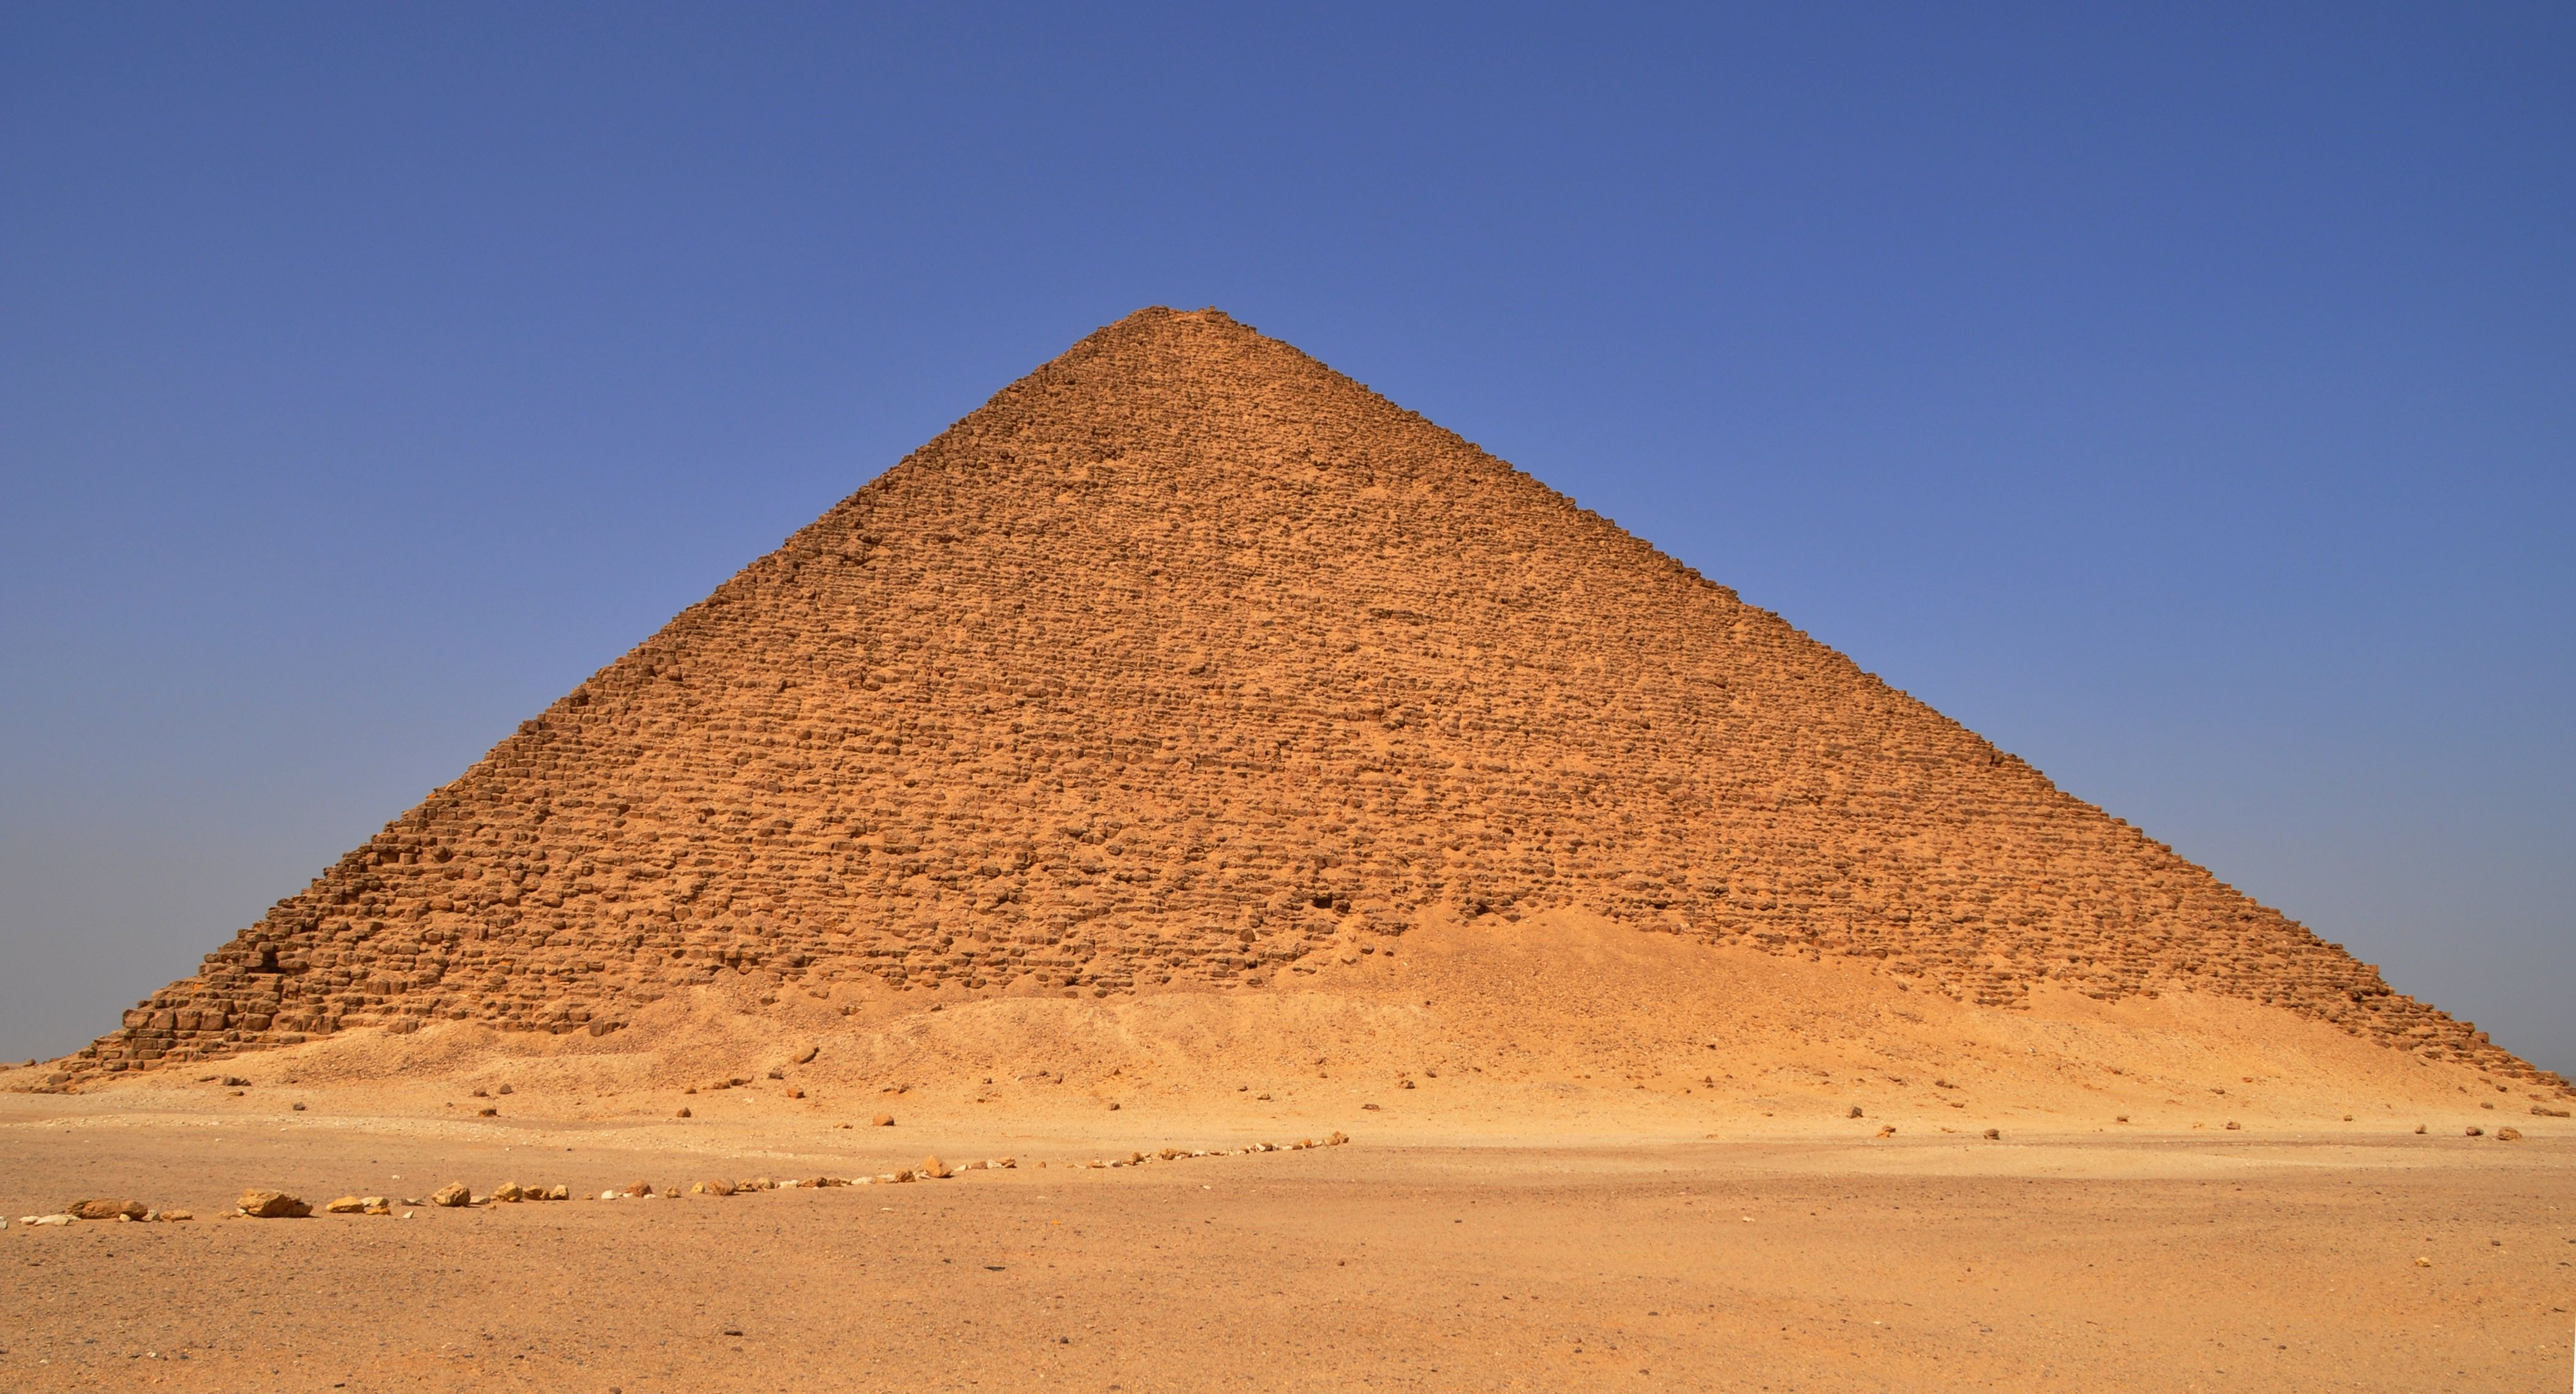 Inspired by Imhotep's efforts with the Step Pyramid, the great pyramid-building era of Egypt began with Sneferu, who finally built a true pyramid on his third attempt.